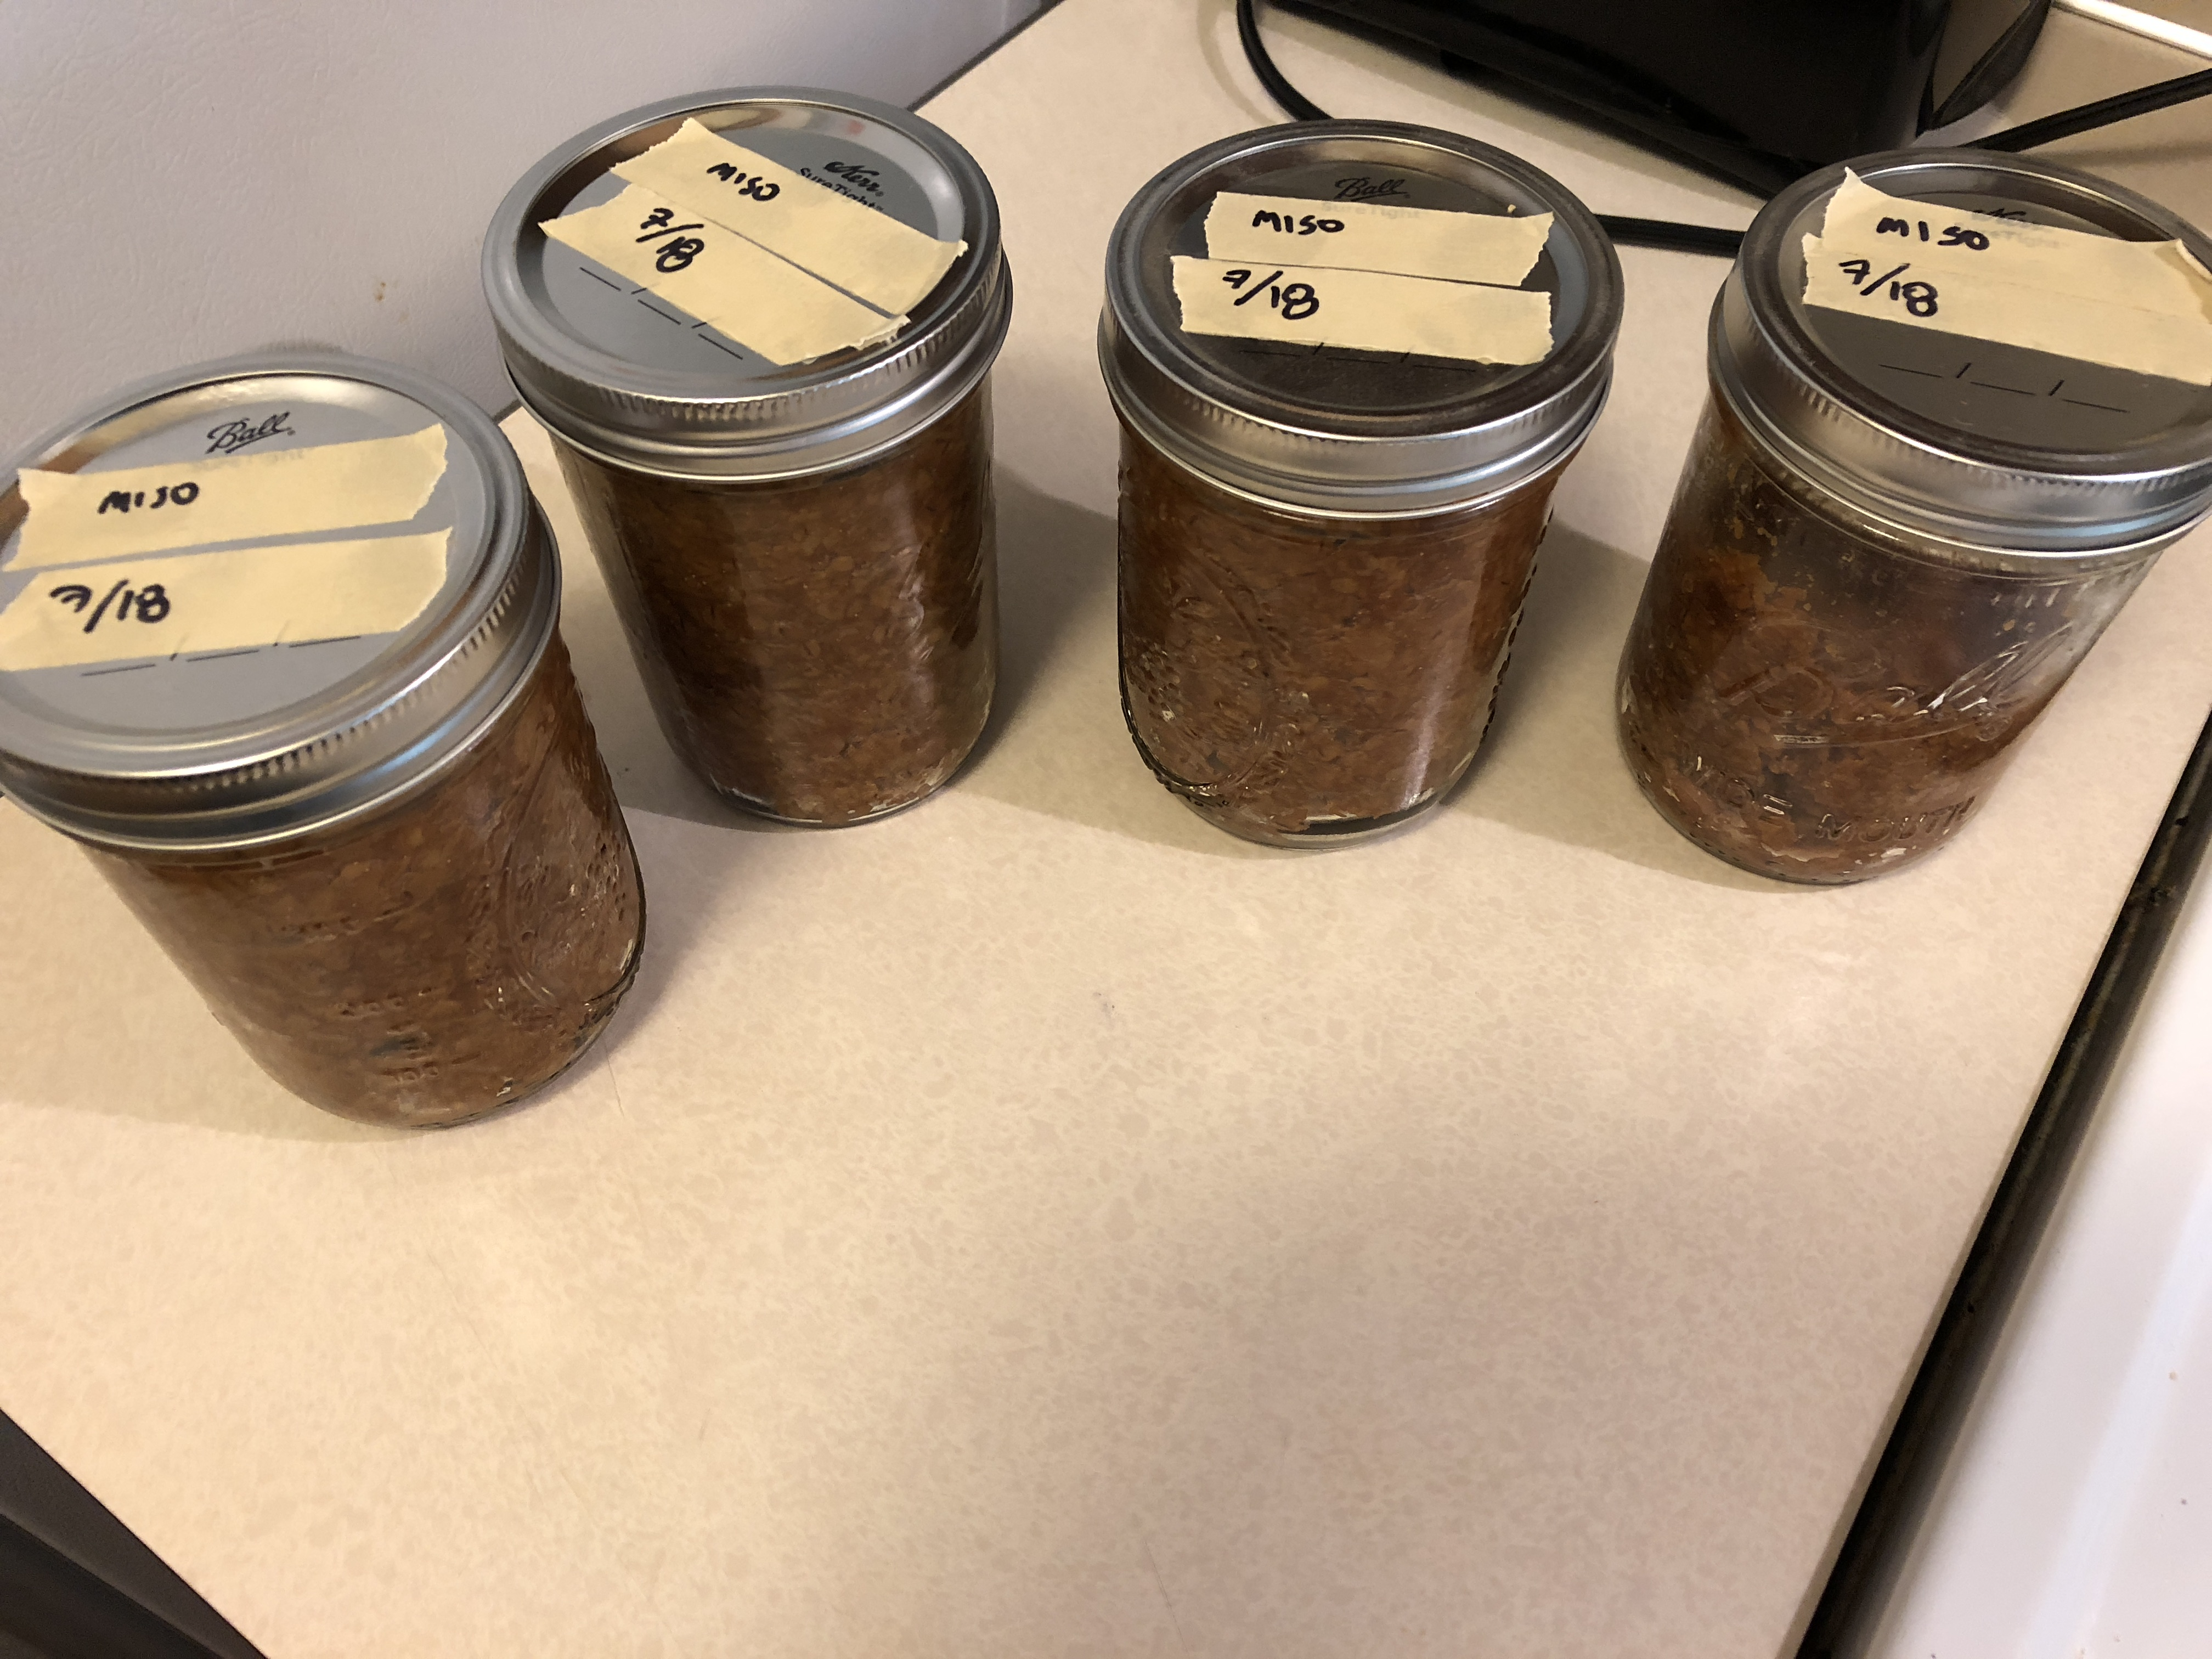 Miso packed into storage jars.